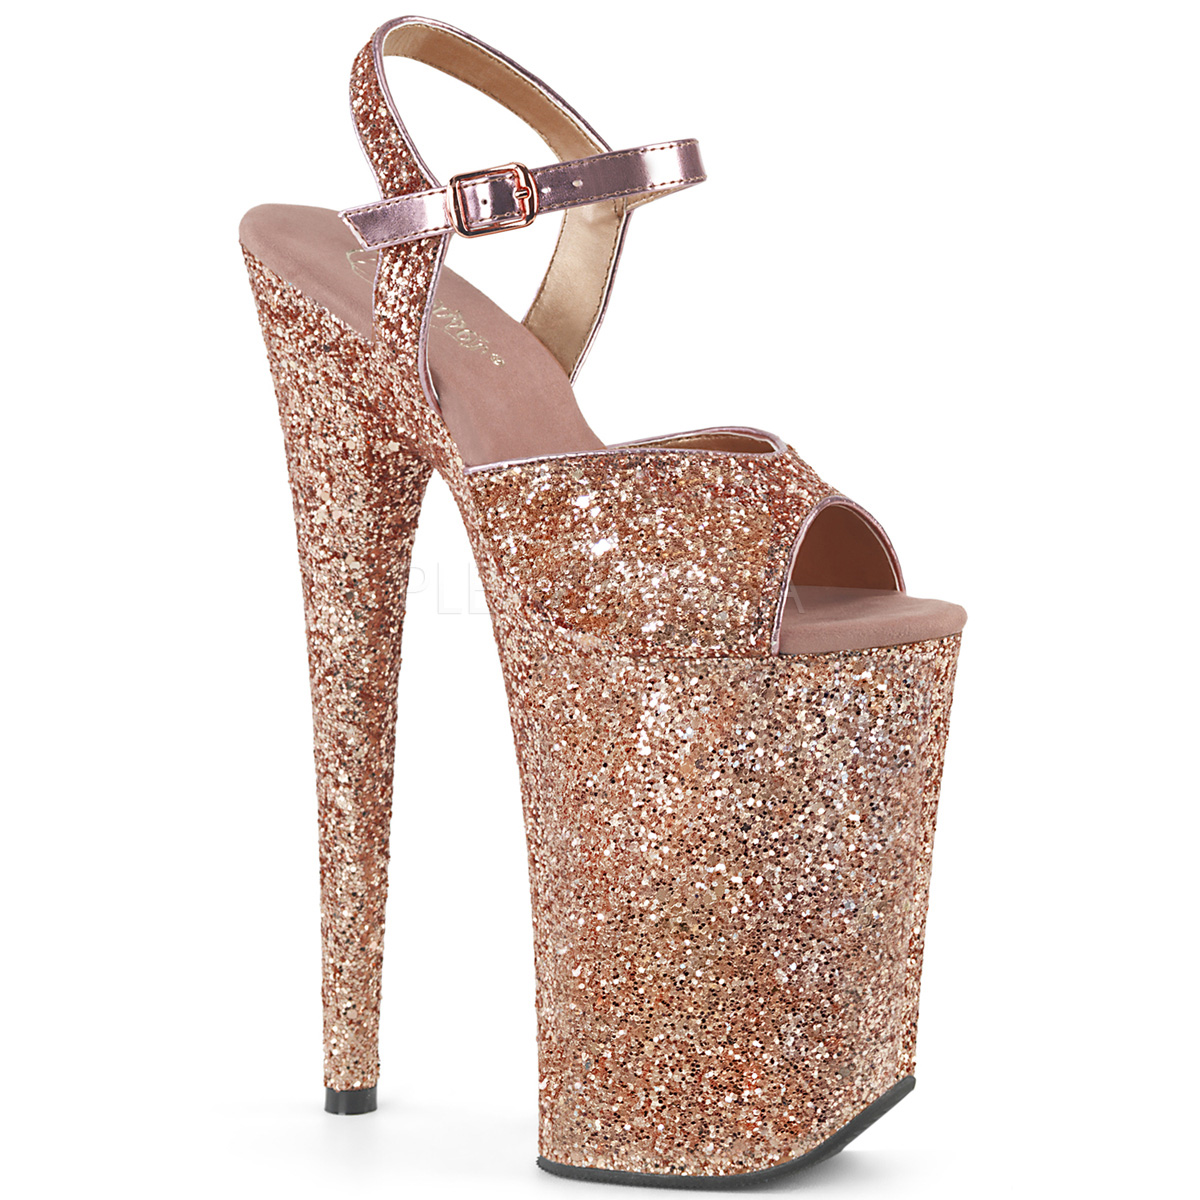 bce77a2faa6e Pleaser Infinity-910LG Rose Gold Glitter - Hot For Heels And More